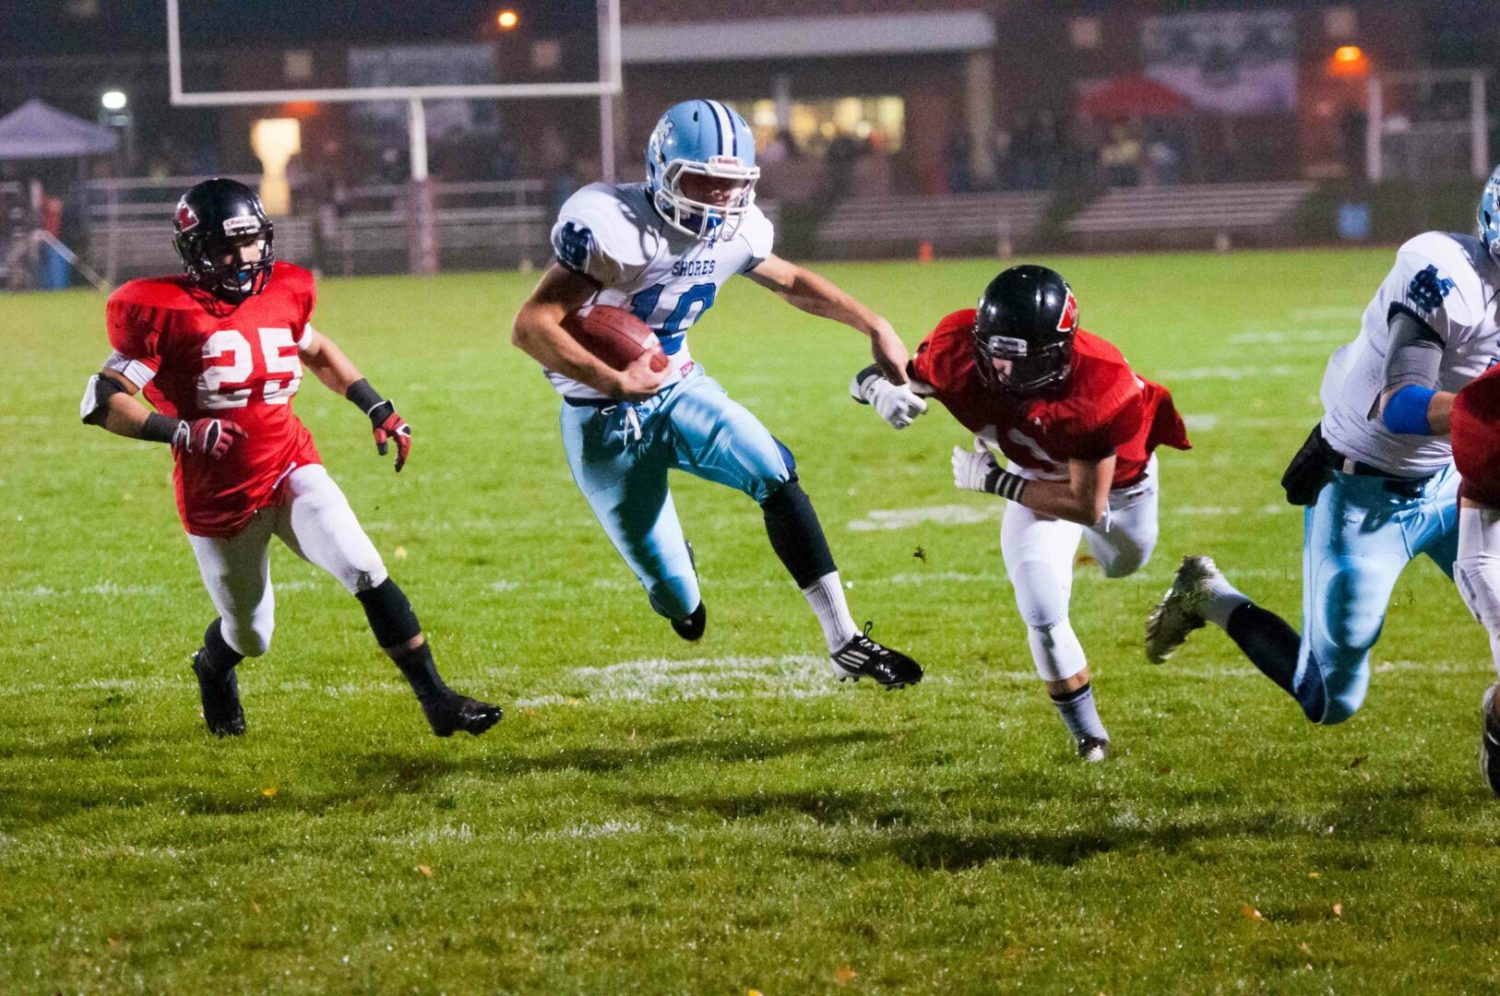 Mona Shores puts scare into Lowell before falling in Division 2 district opener